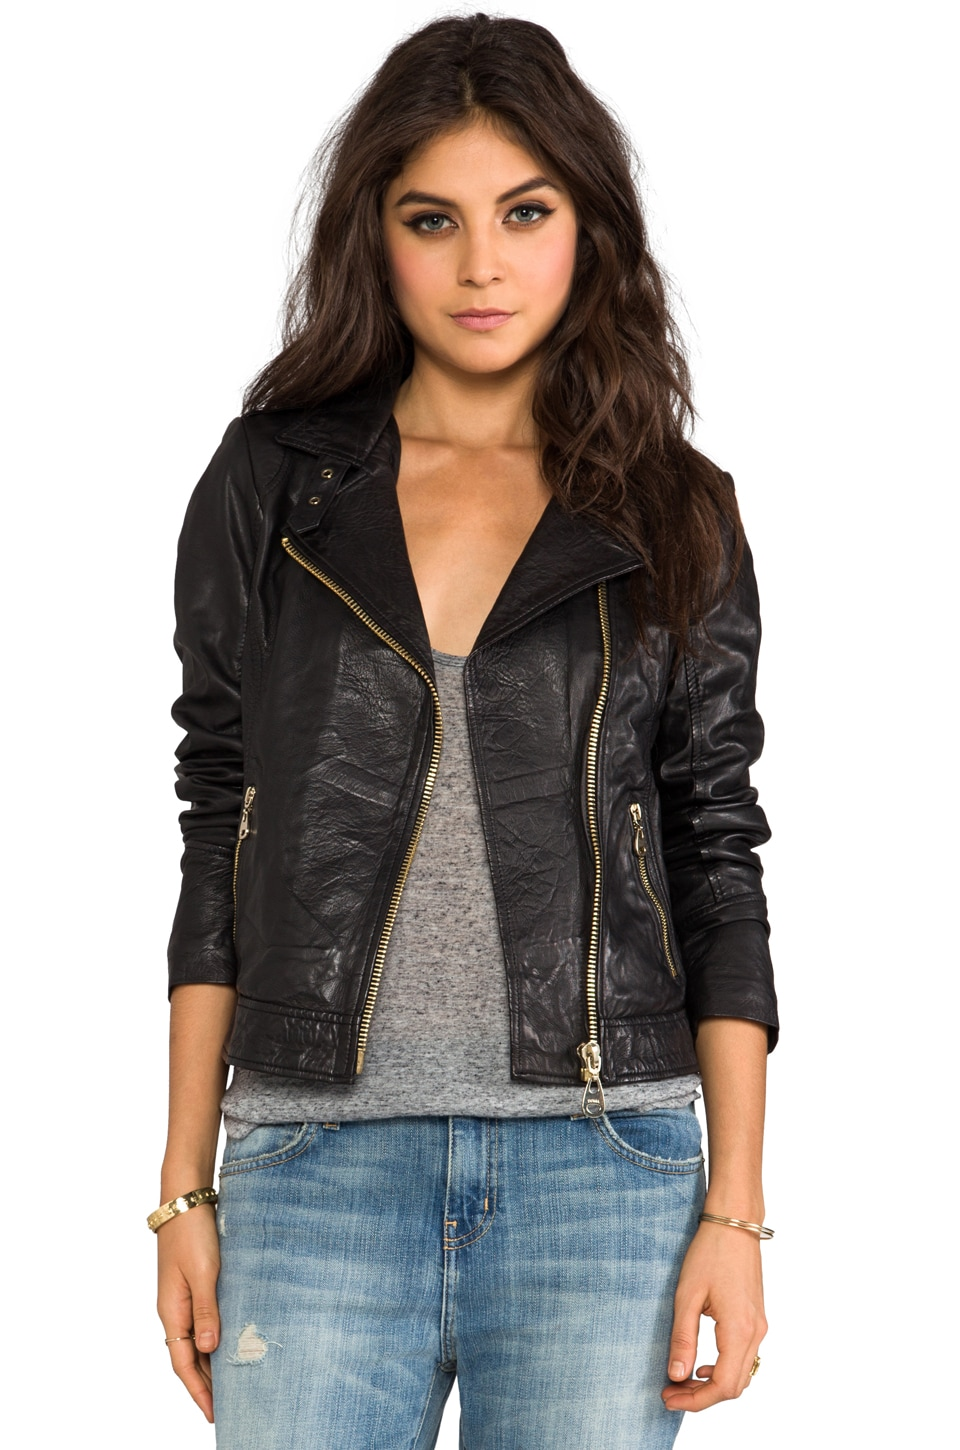 DOMA Tuscano Lamb Leather Jacket in Black